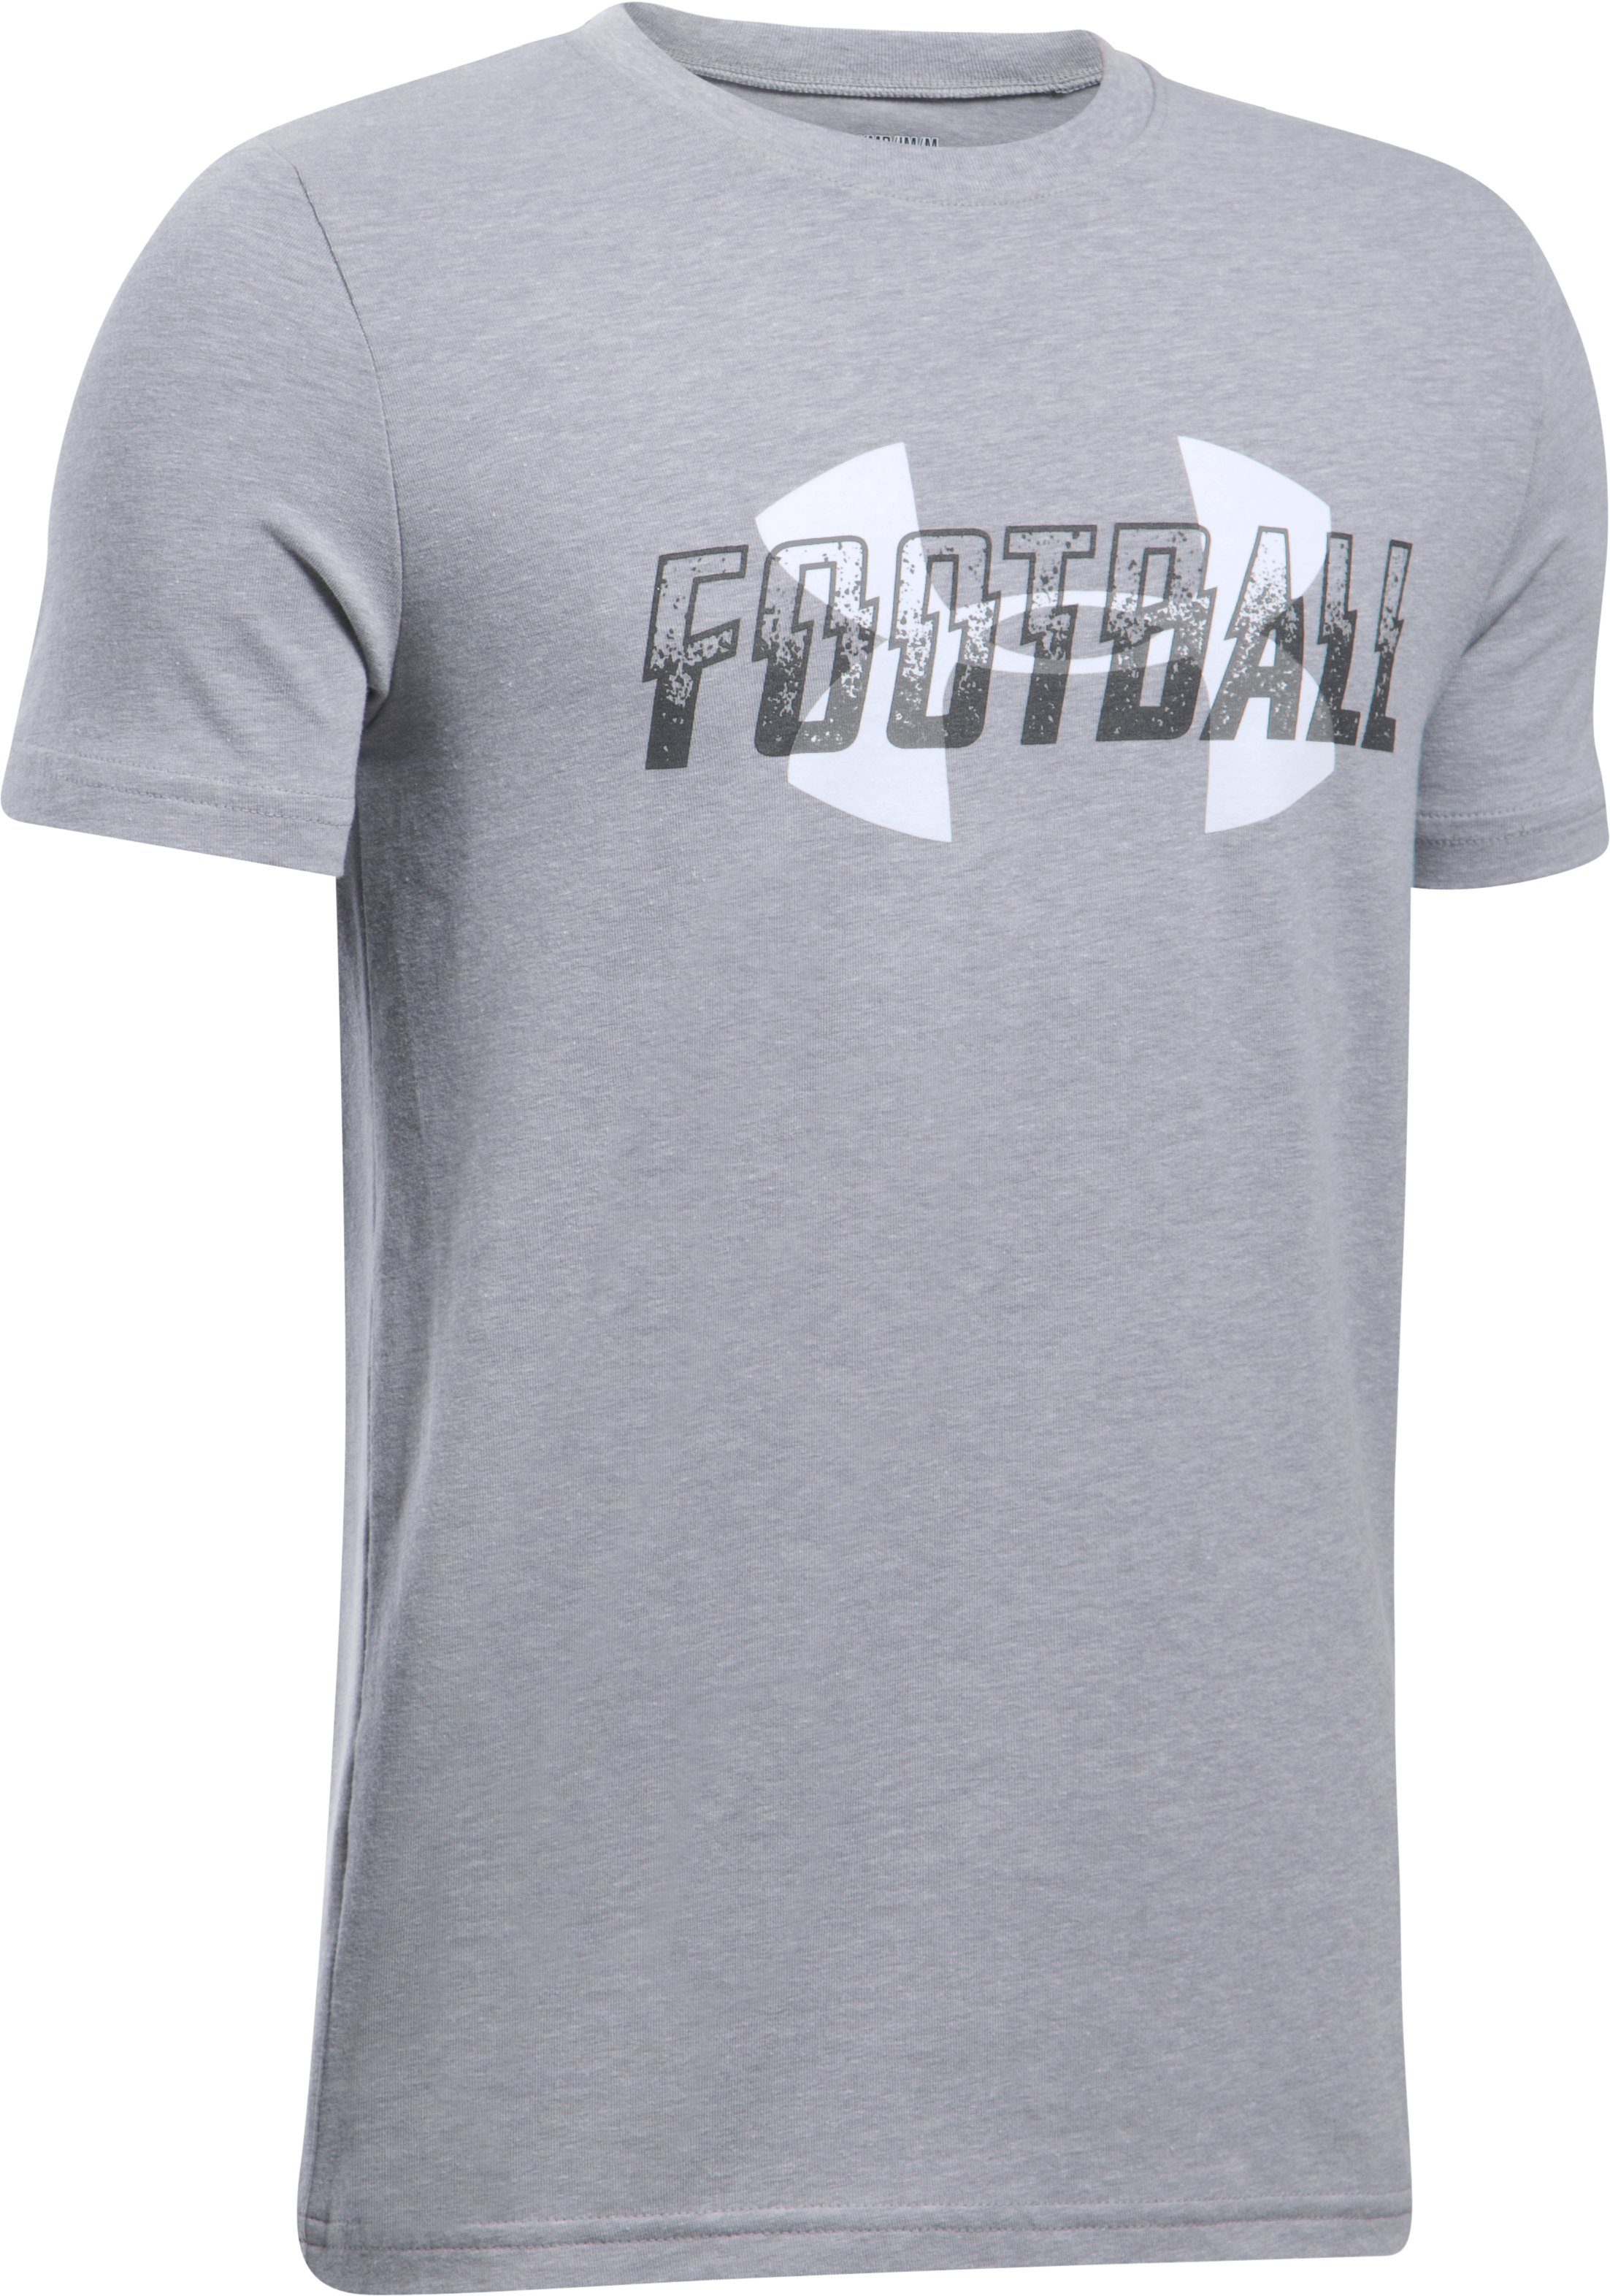 Boys' UA Football Overlay T-Shirt, True Gray Heather